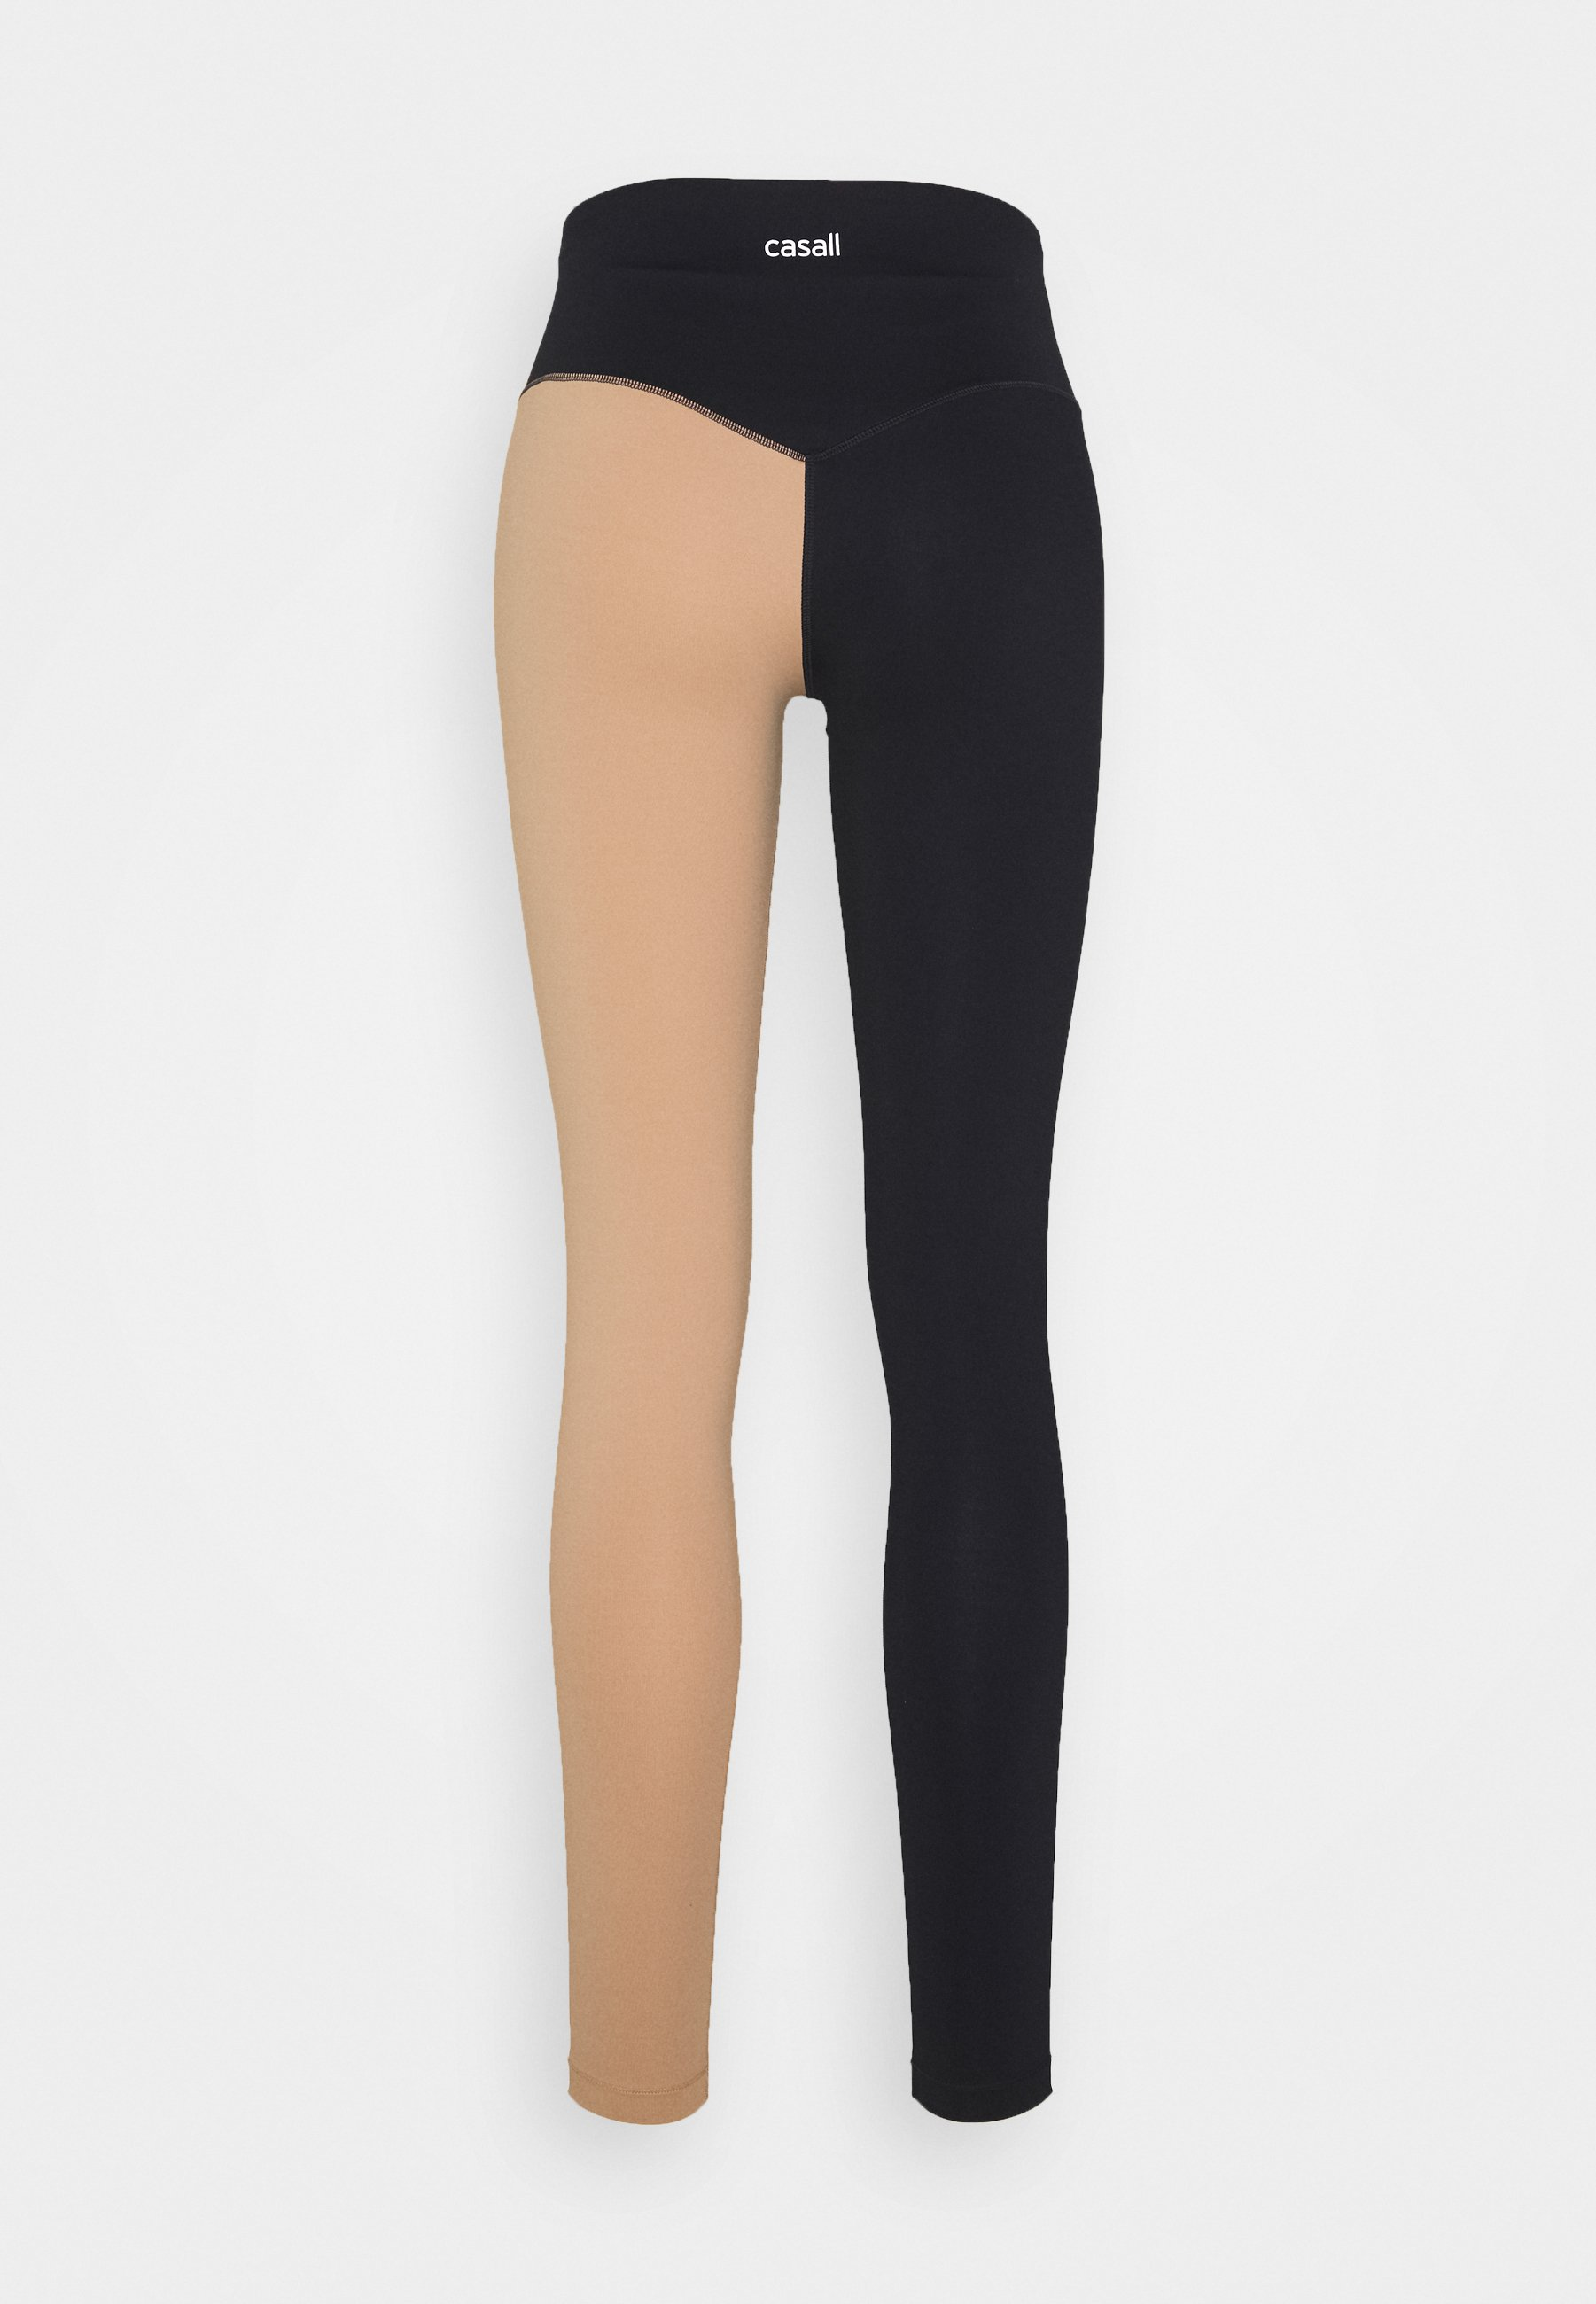 Casall BLOCK HIGH WAIST - Tights - black/clean beige